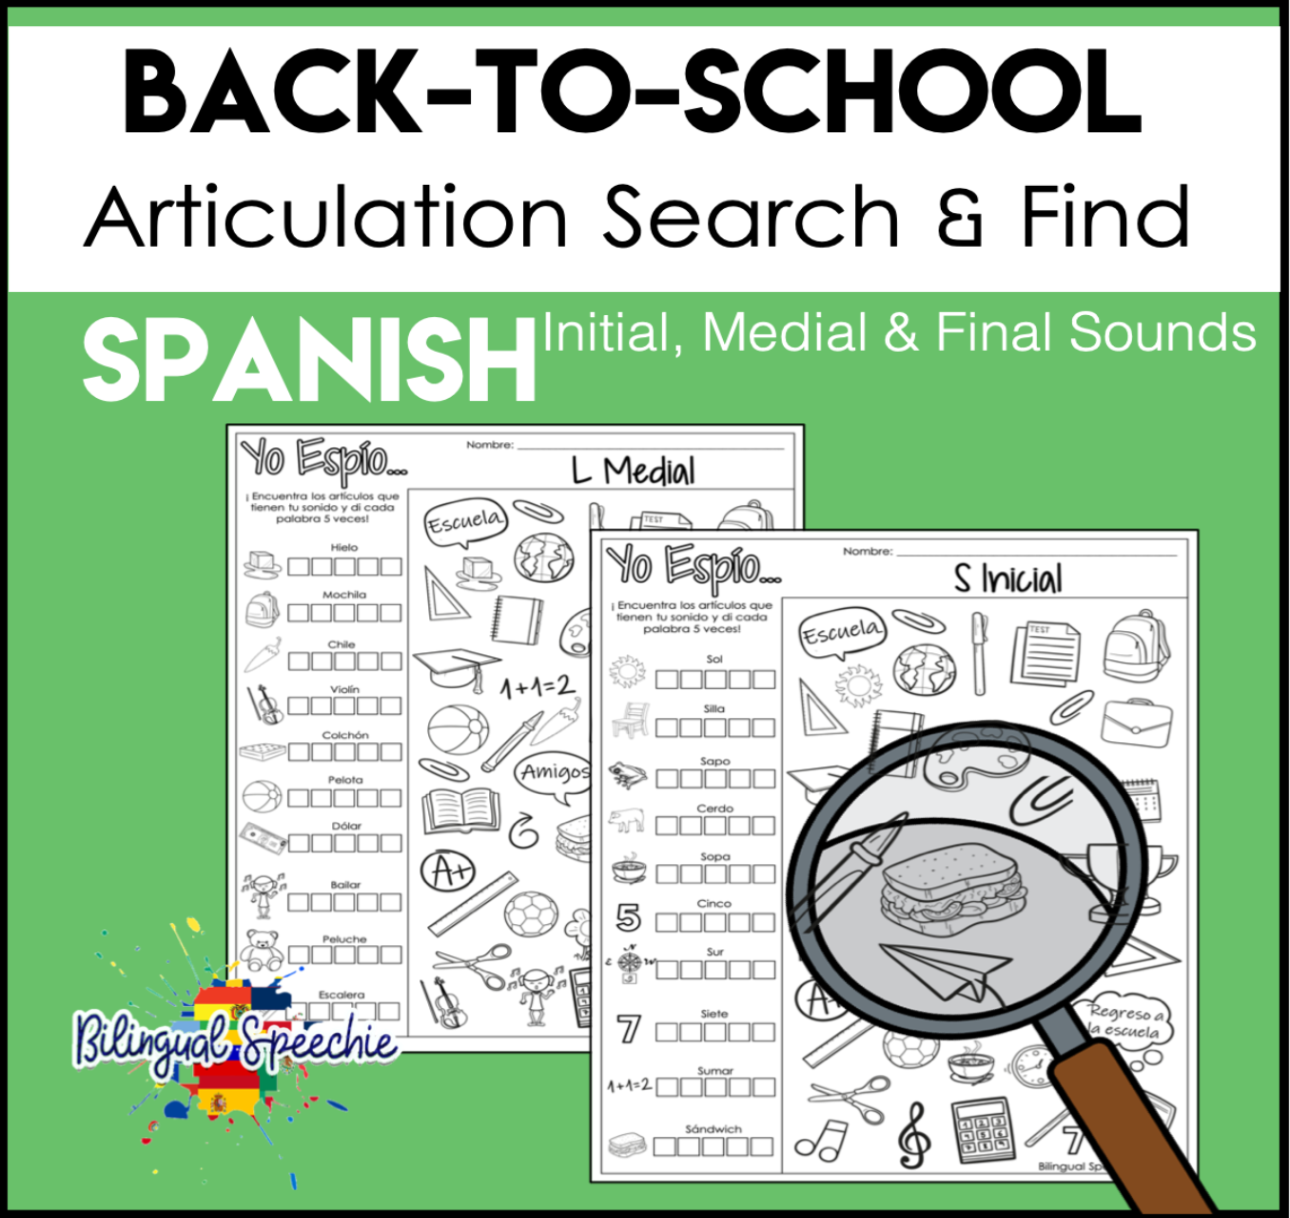 Search & Find | Back to School Spanish Articulation